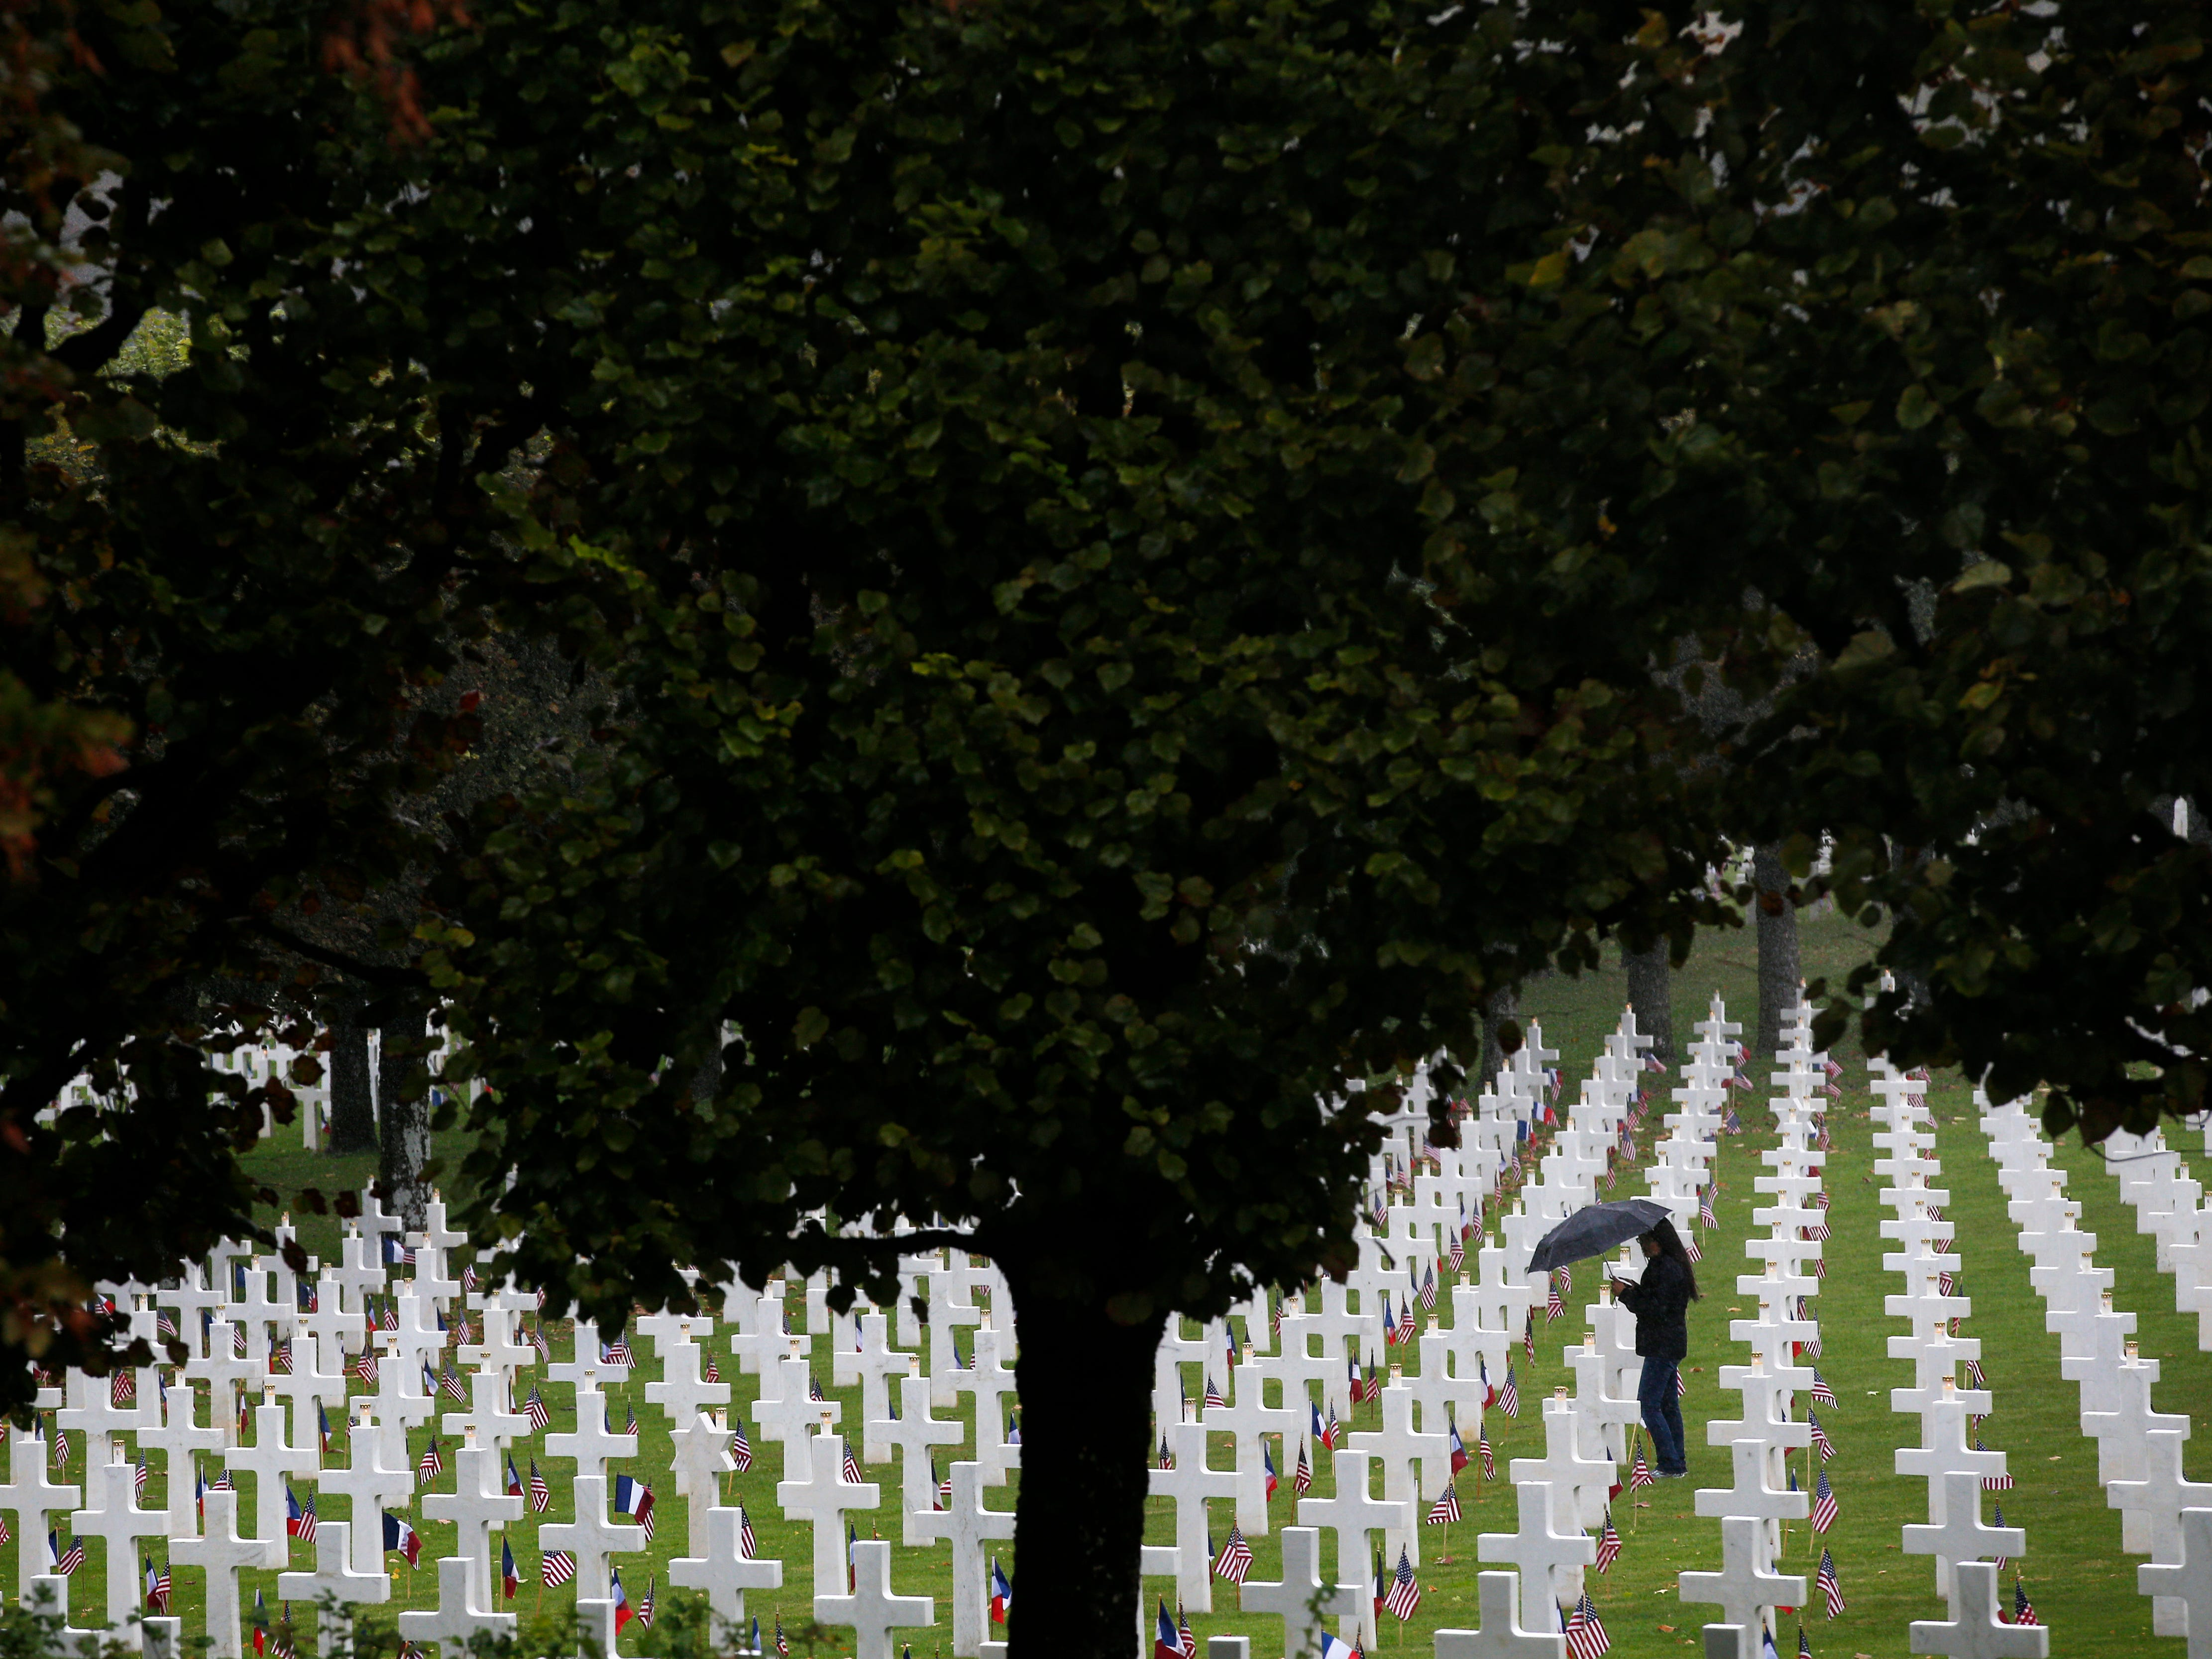 A woman walks in the Meuse-Argonne cemetery, northeastern France, during a remembrance ceremony, Sunday, Sept. 23, 2018. A remembrance ceremony is taking place Sunday for the 1918 Meuse-Argonne offensive, America's deadliest battle ever that cost 26,000 lives but helped bringing an end to World War 1.